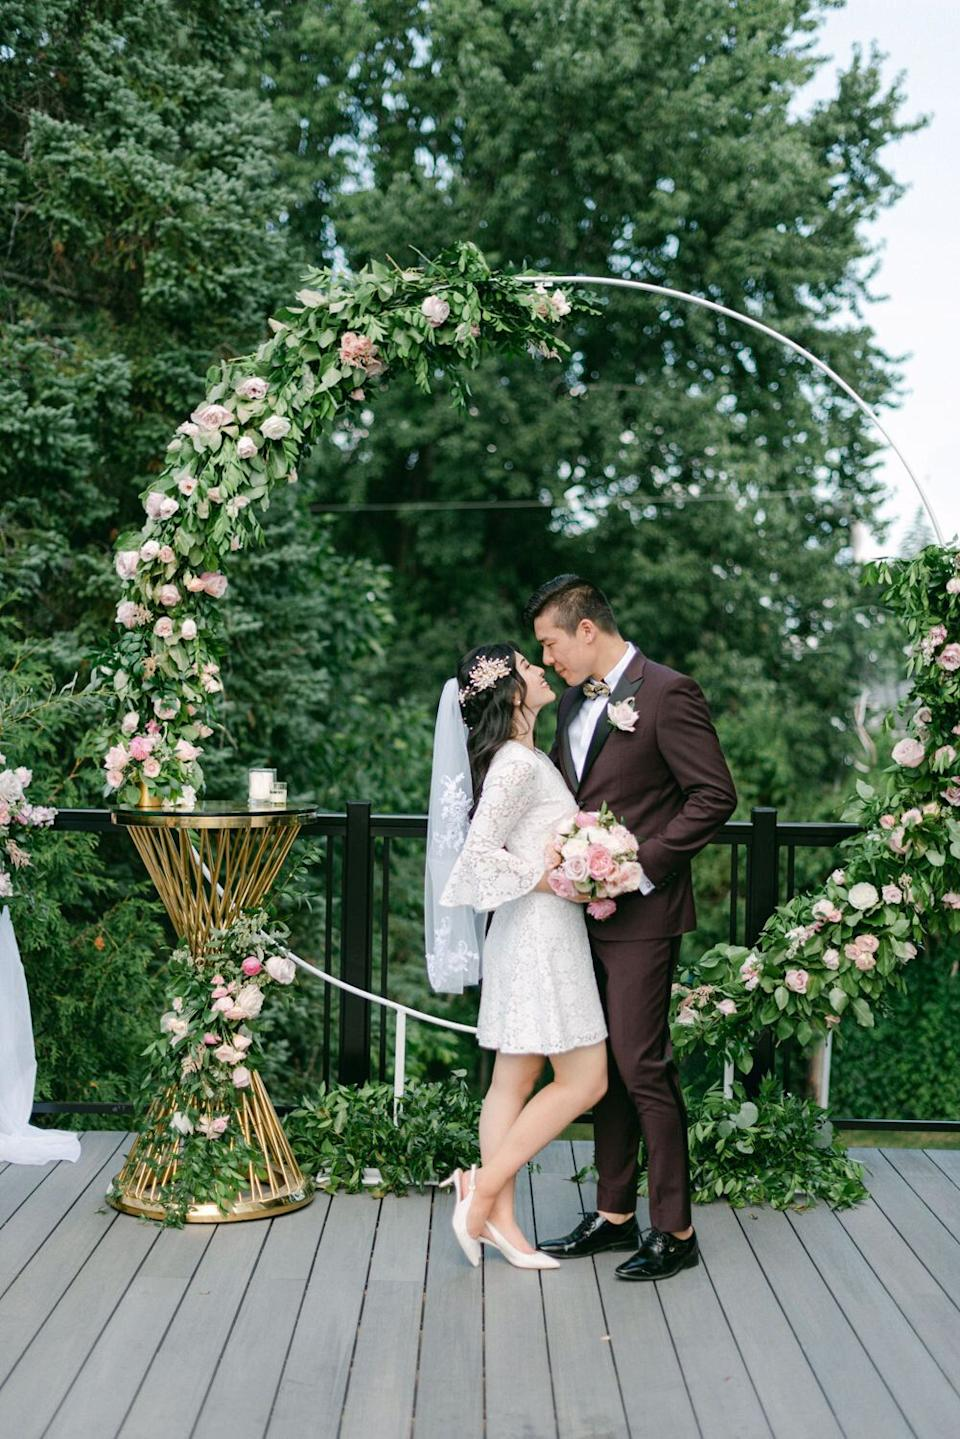 """They said their """"I do's"""" attheir home in Ottawa, Canada. (Photo: <a href=""""https://www.laceandluce.com/"""" target=""""_blank"""">Lace and Luce </a>)"""